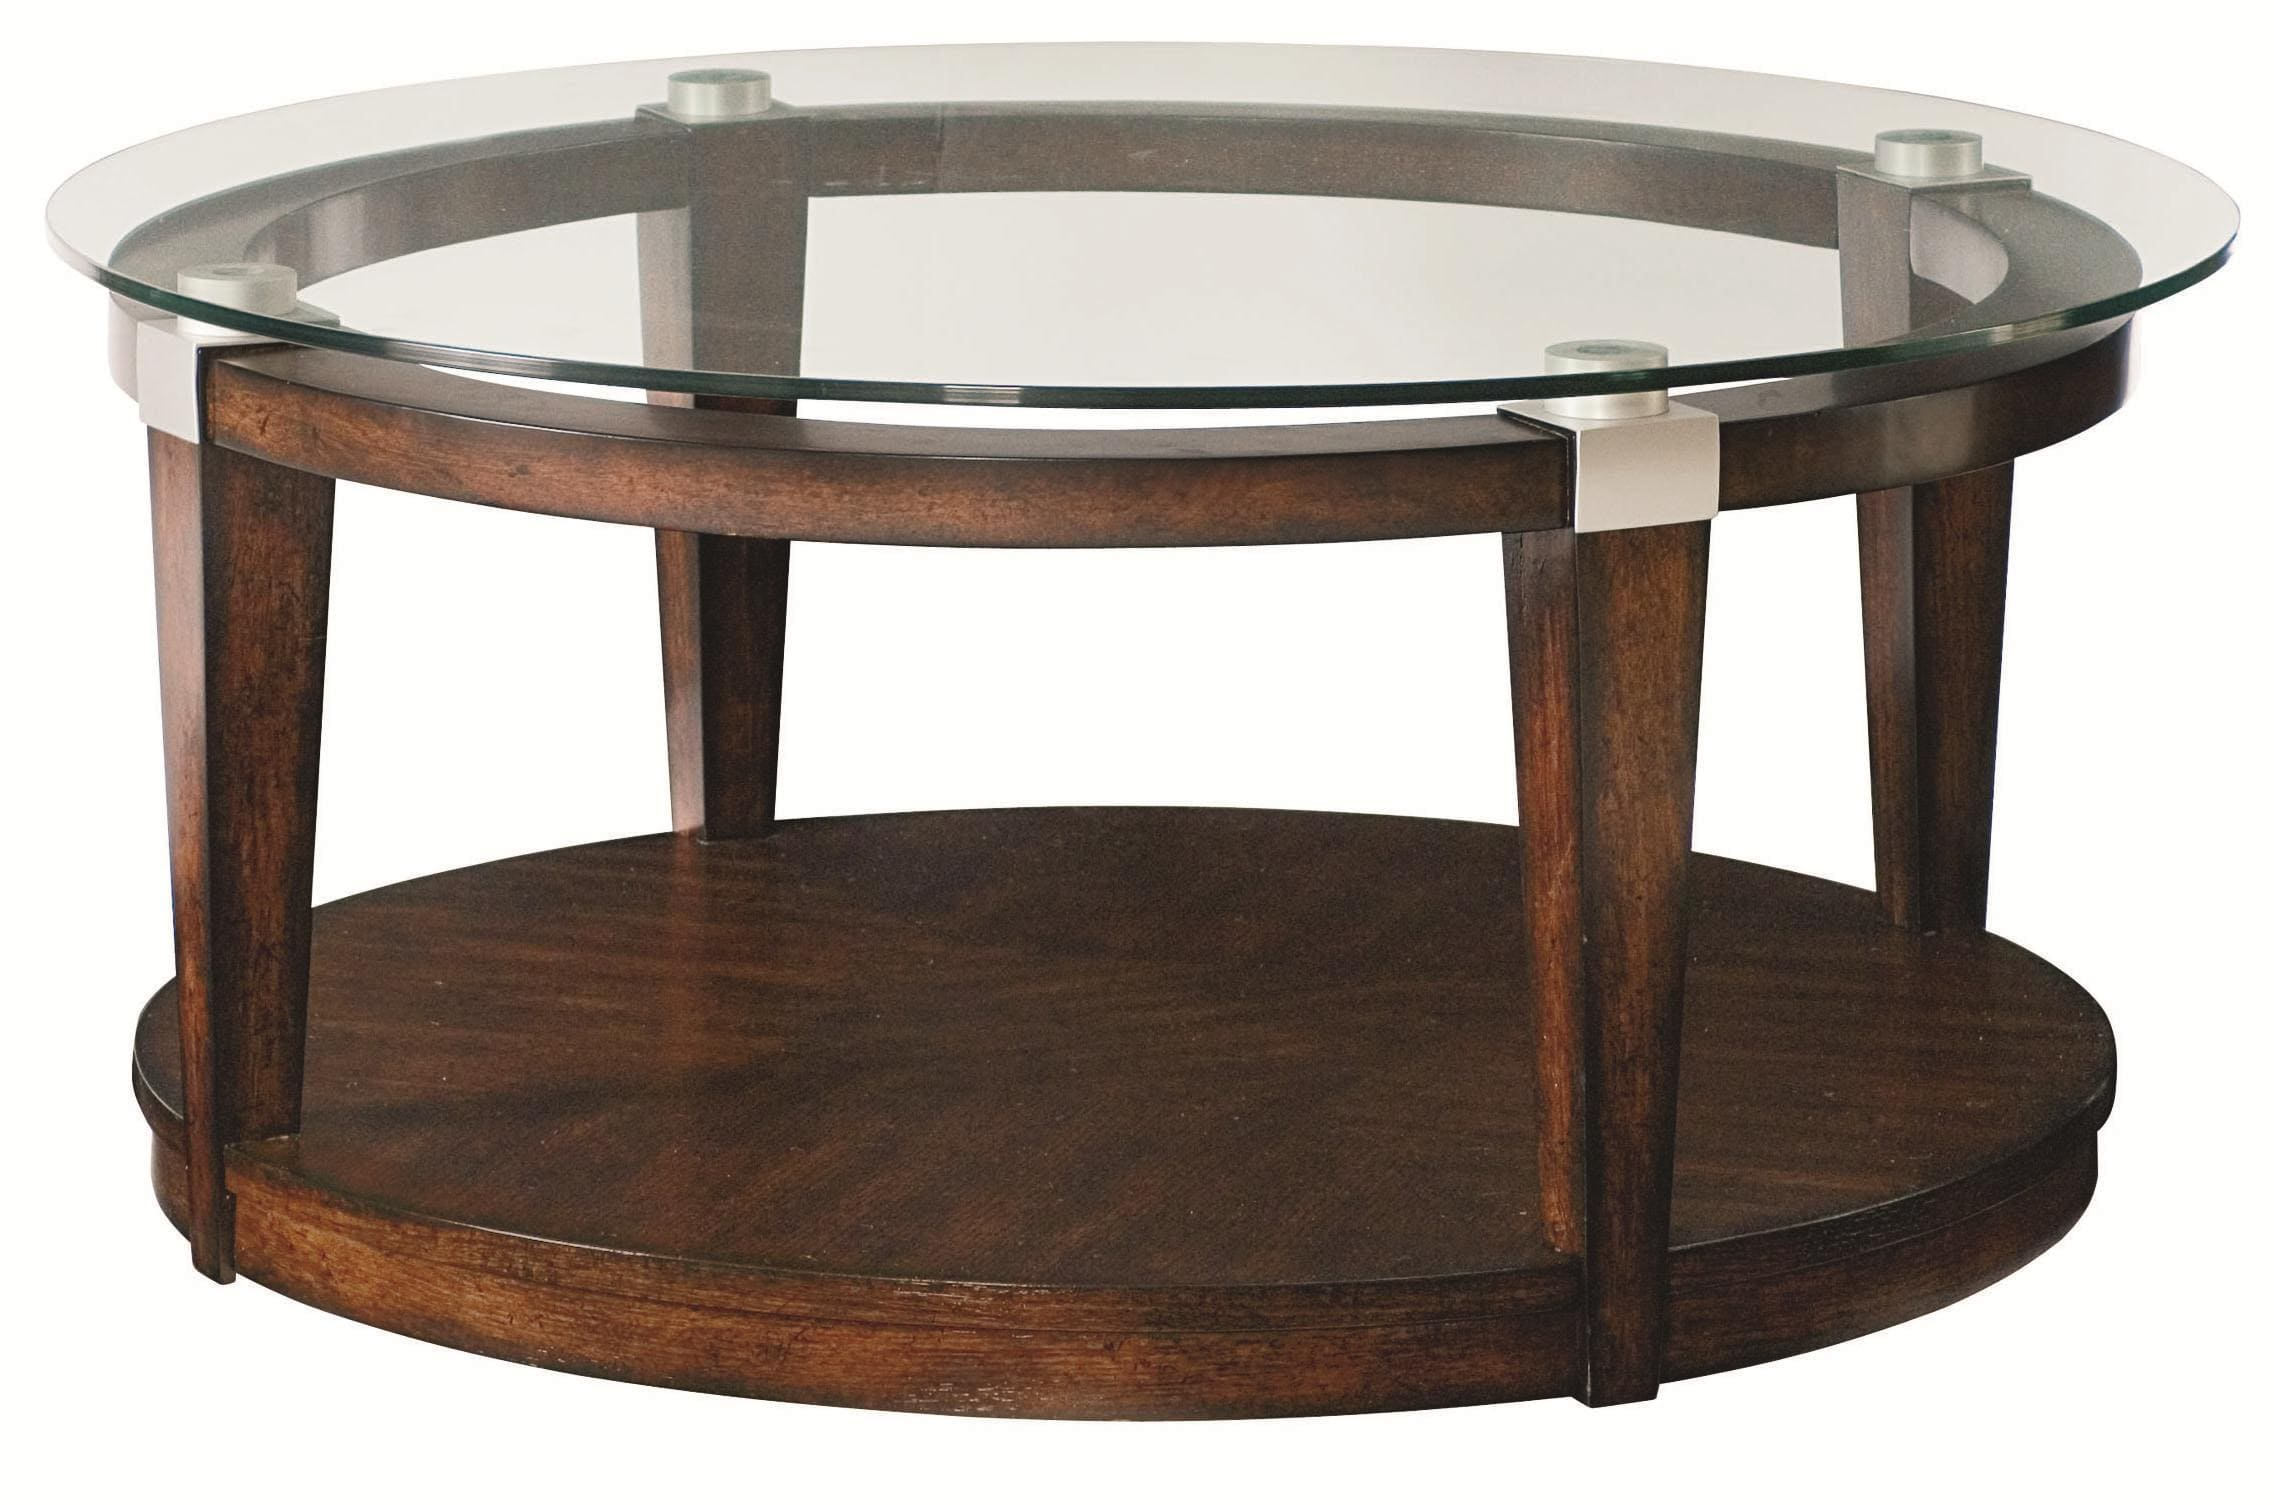 WOODEN GLASS TABLES & FURNITURES